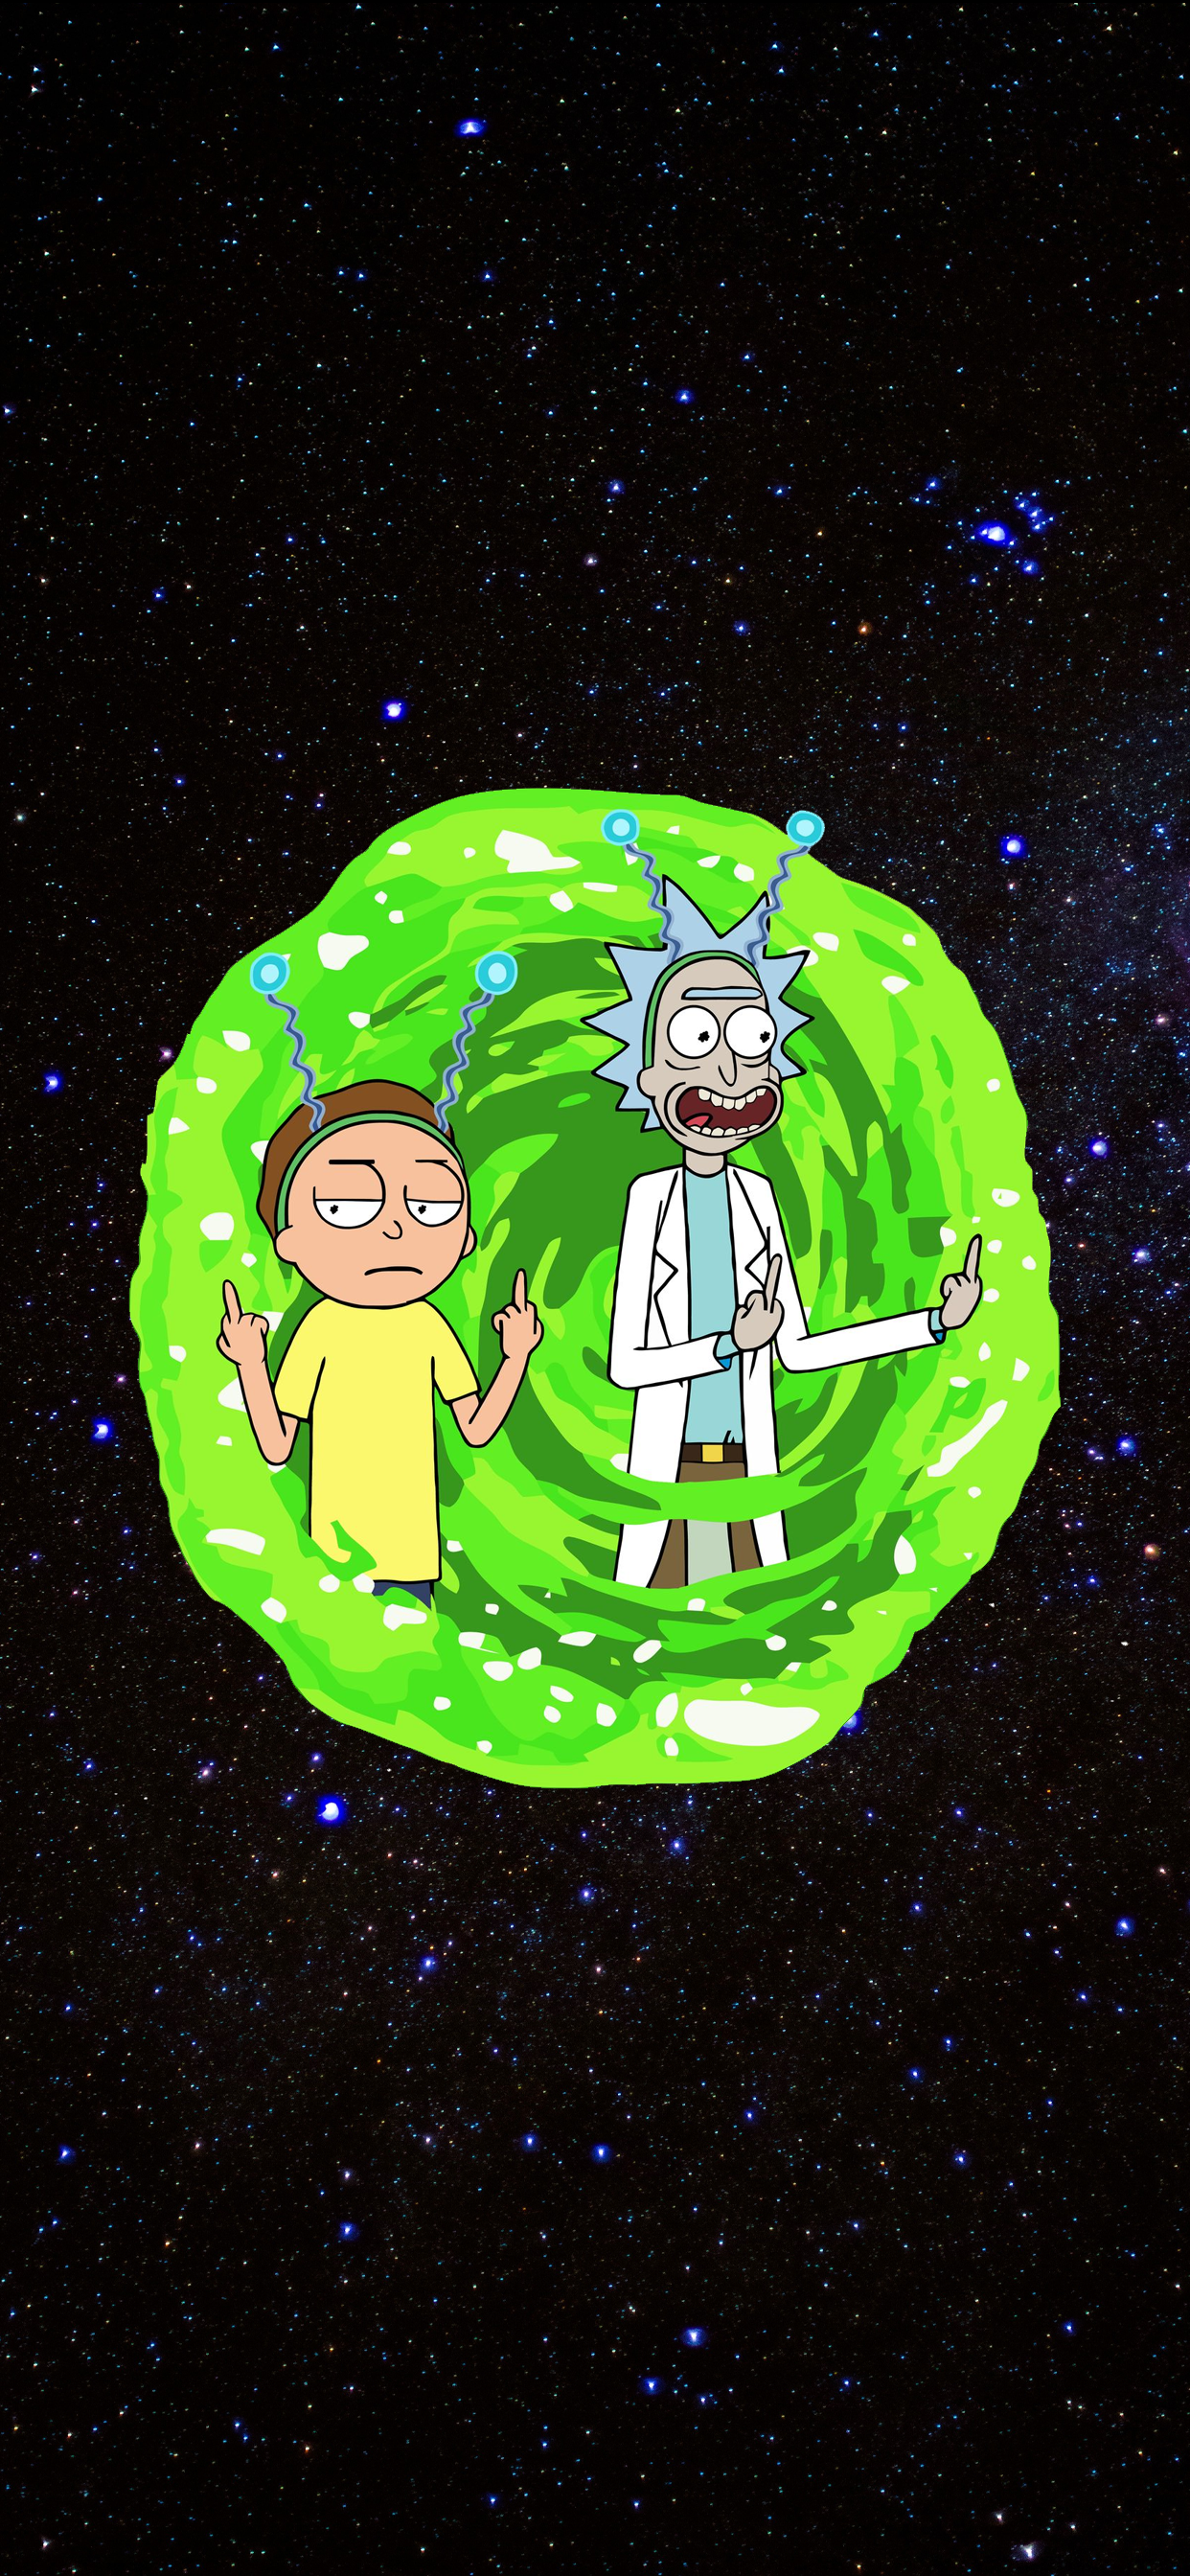 Heroscreen Rick And Morty Phone Wallpaper Collection 154 Iphone Wallpaper Rick And Morty Rick And Morty Drawing Rick And Morty Stickers